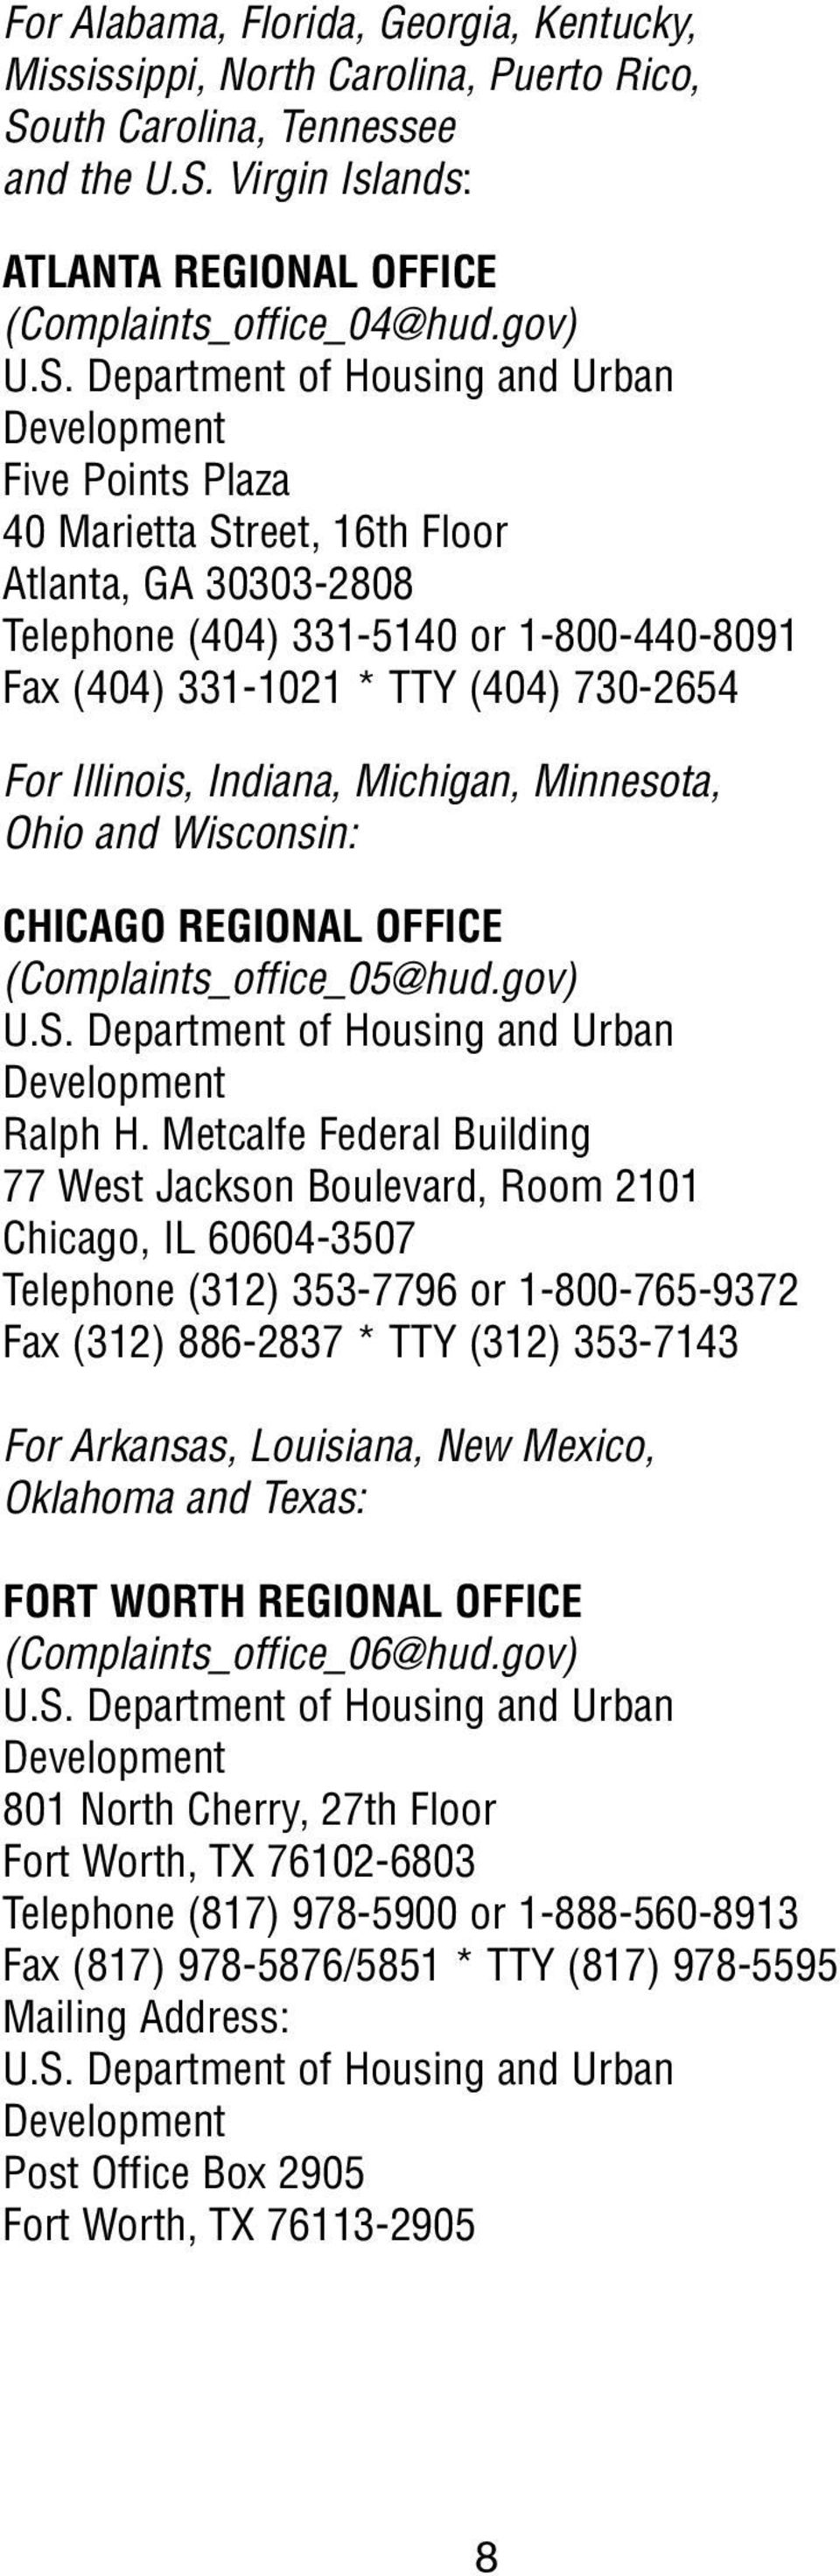 Minnesota, Ohio and Wisconsin: CHICAGO REGIONAL OFFICE (Complaints_office_05@hud.gov) Ralph H.